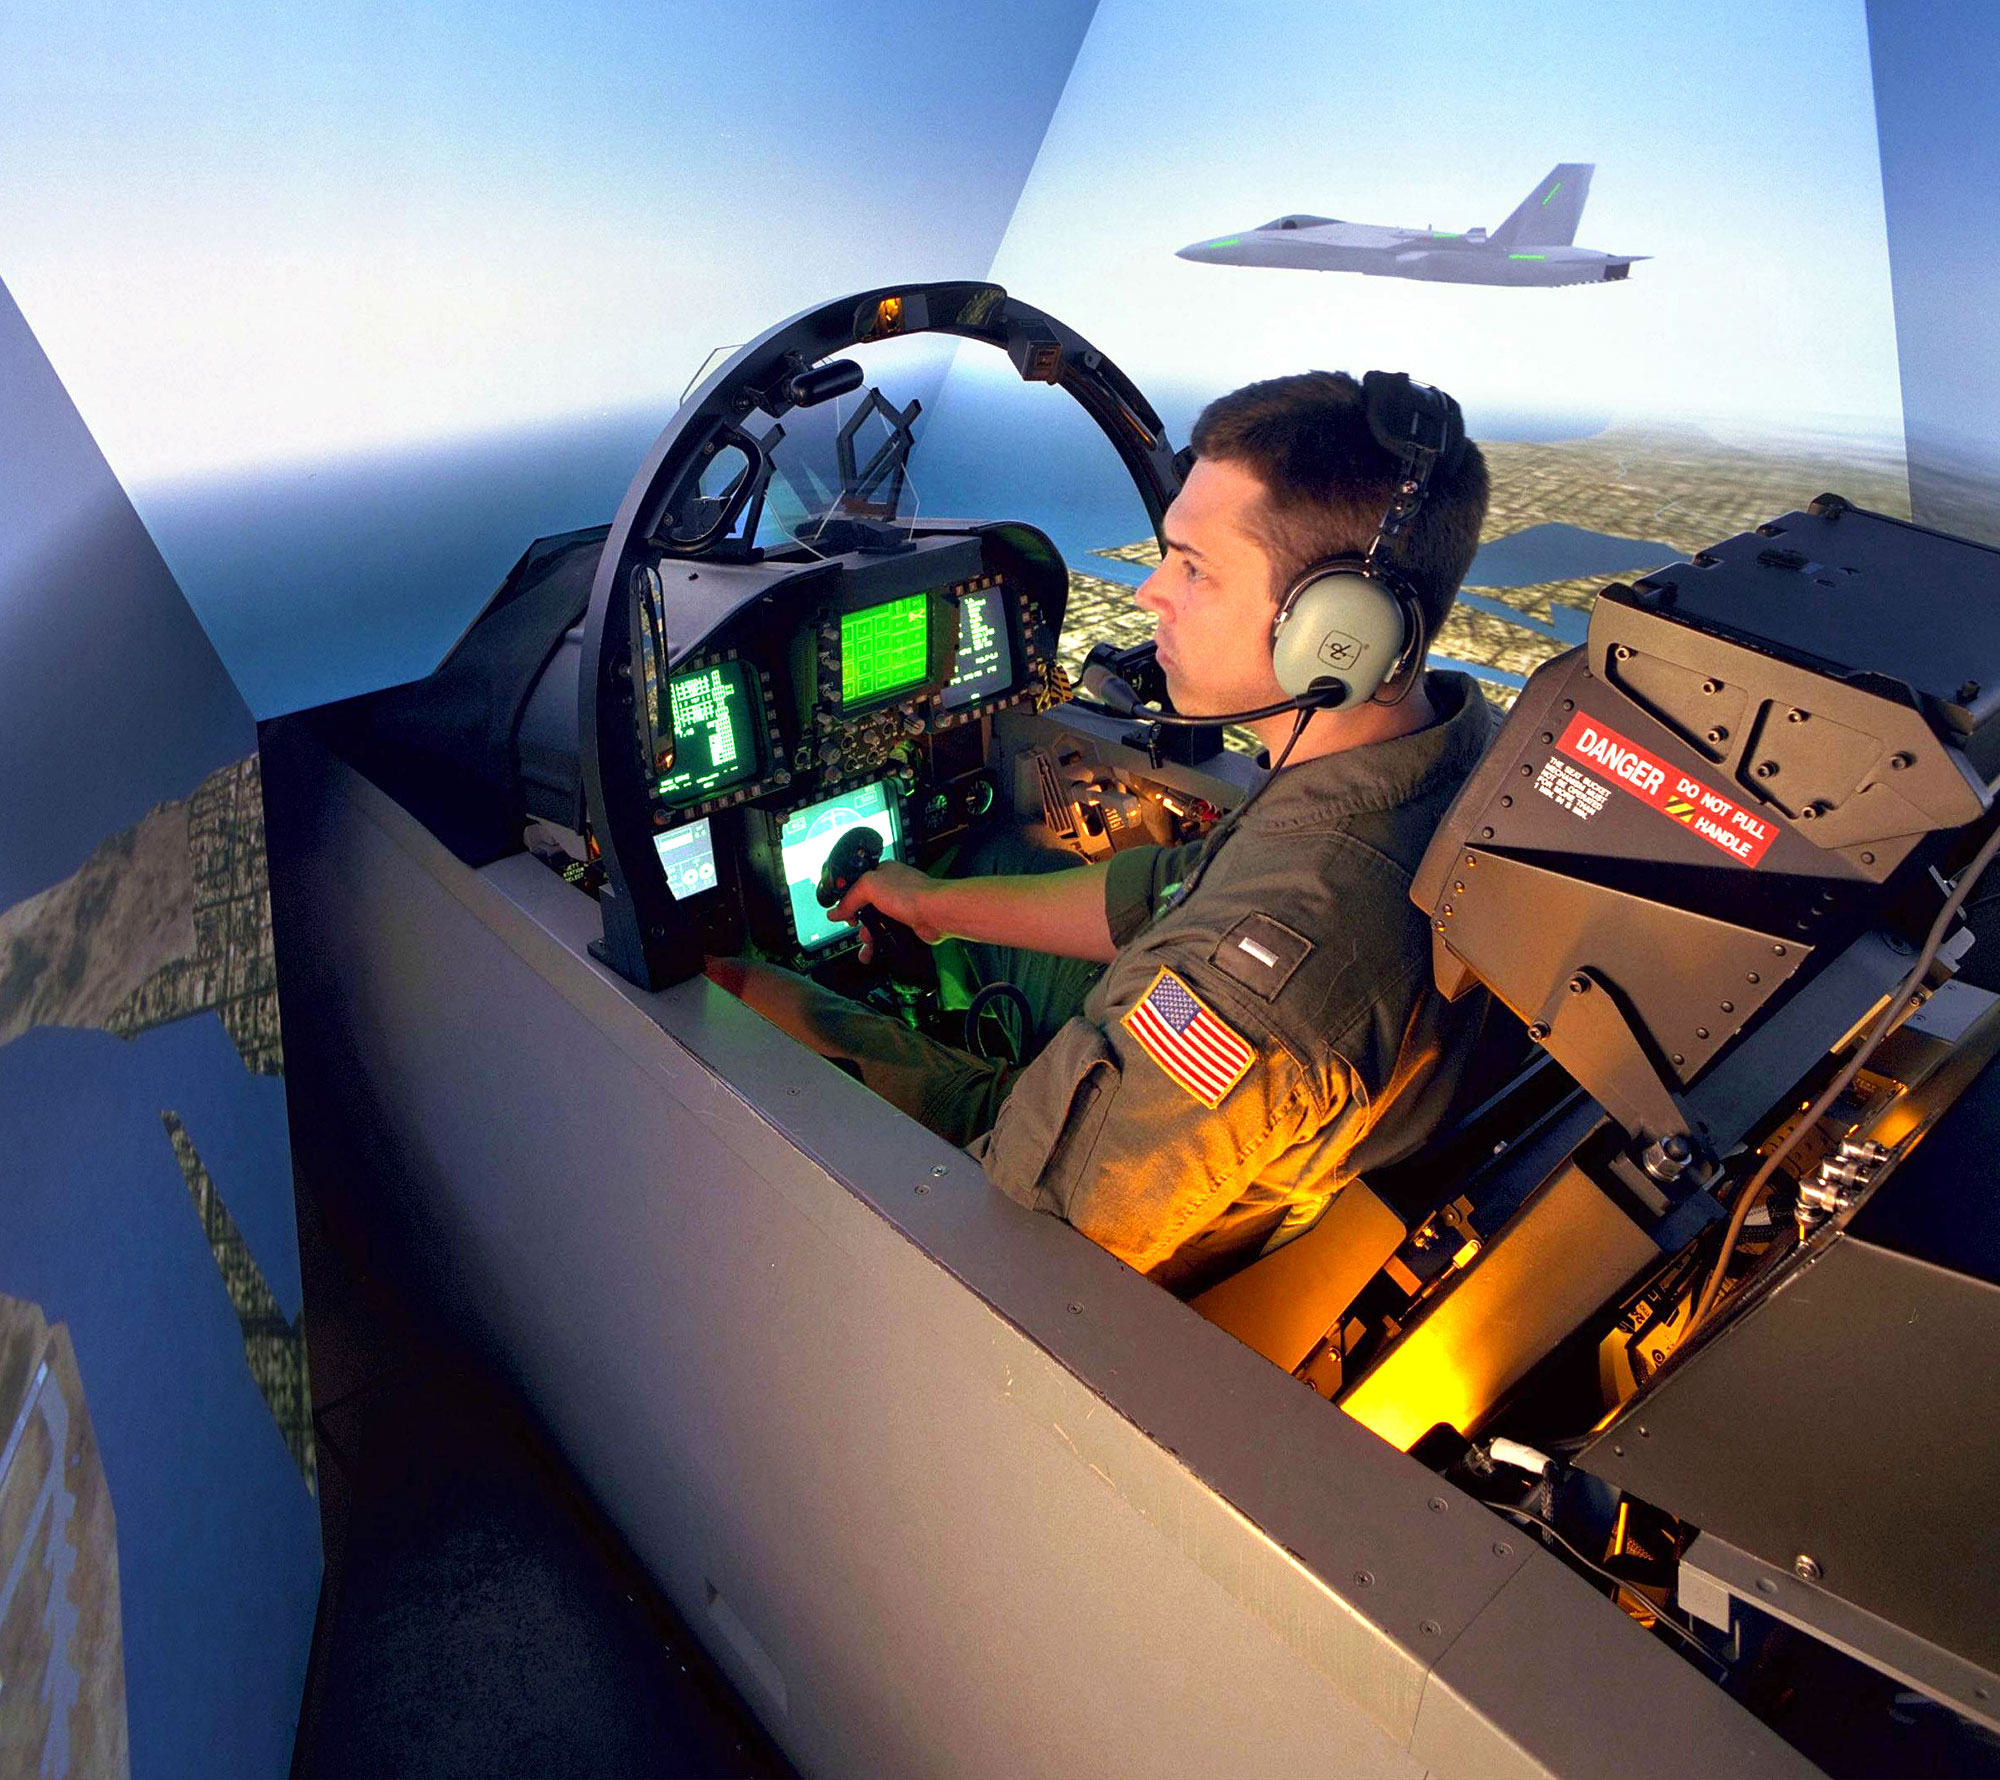 U.S. Military Investing in Simulators